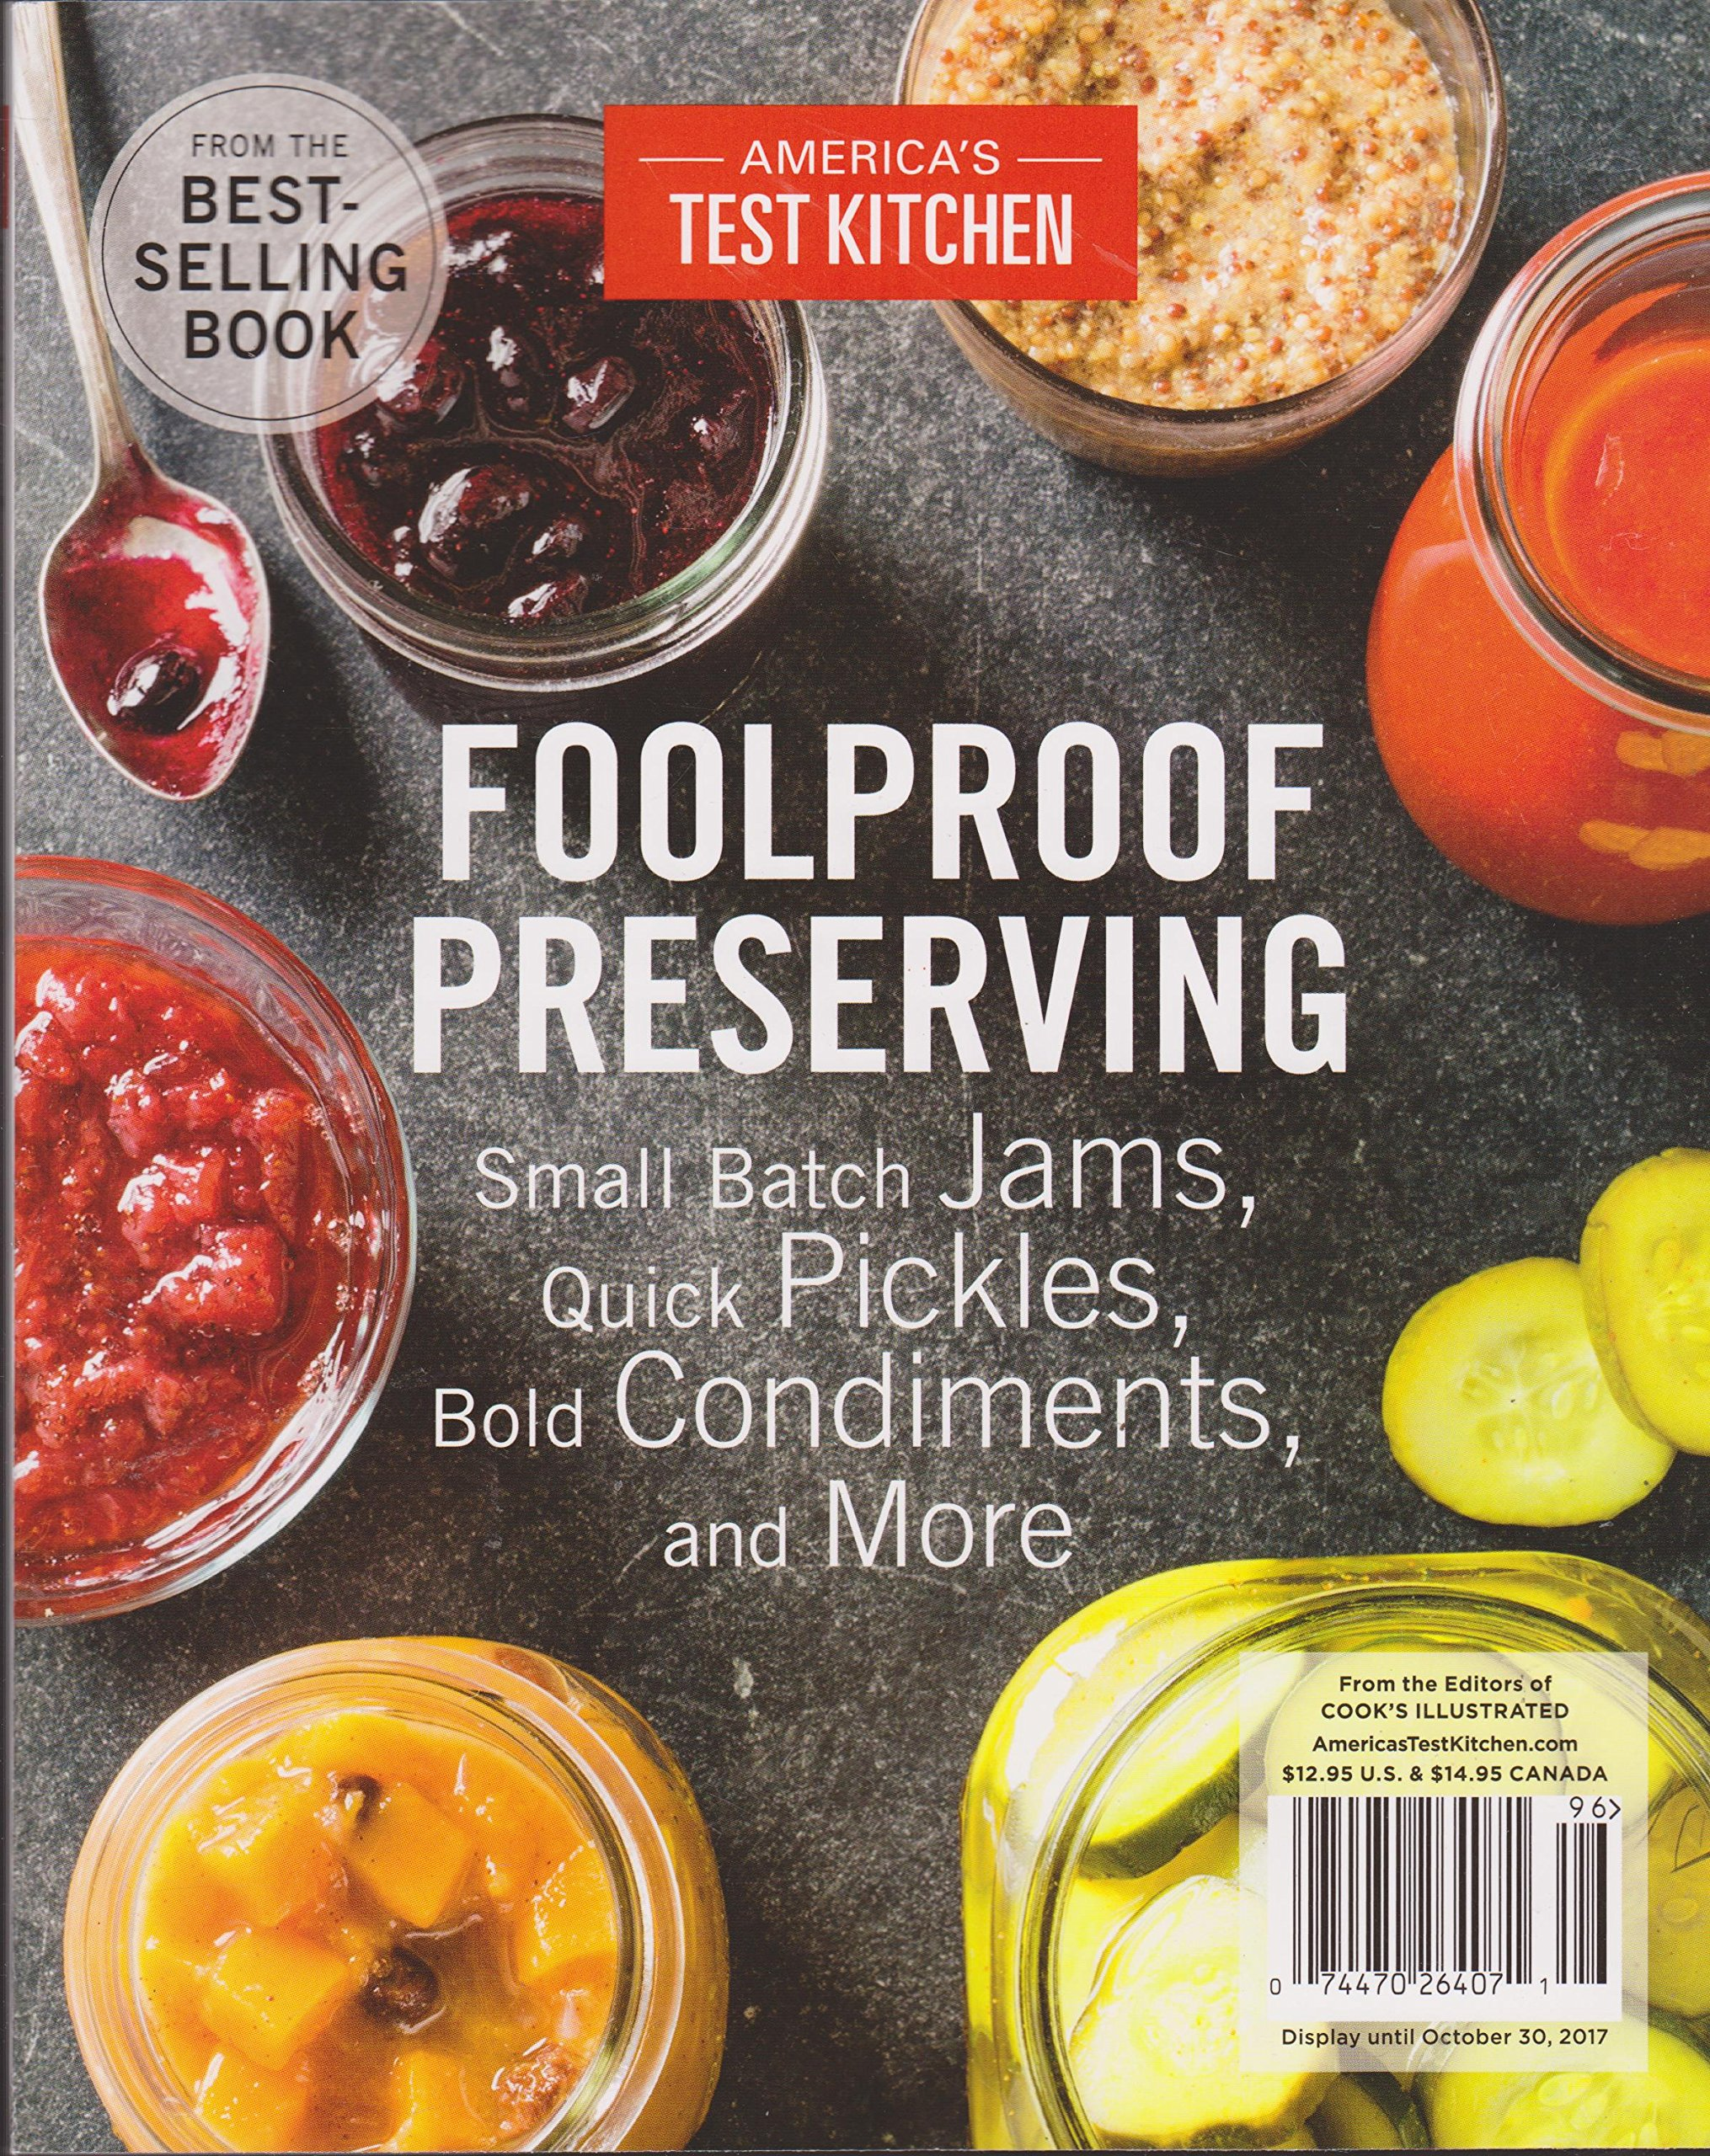 America's Test Kitchen Foolproof Preserving 2017 Small Batch Jams, Quick Pickles Ect.. pdf